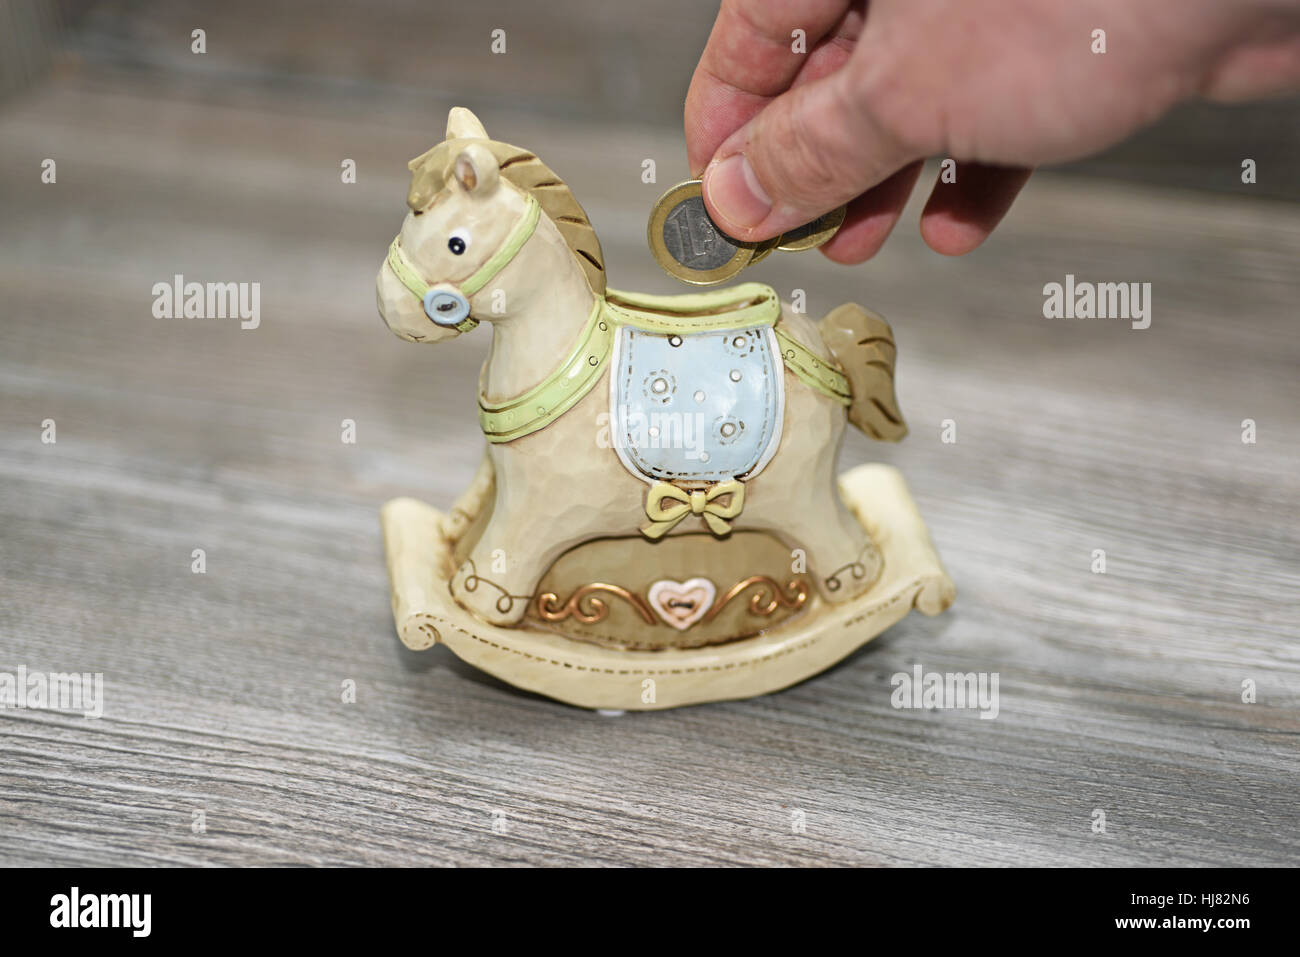 Moneybox in the form of a horse. Stock Photo